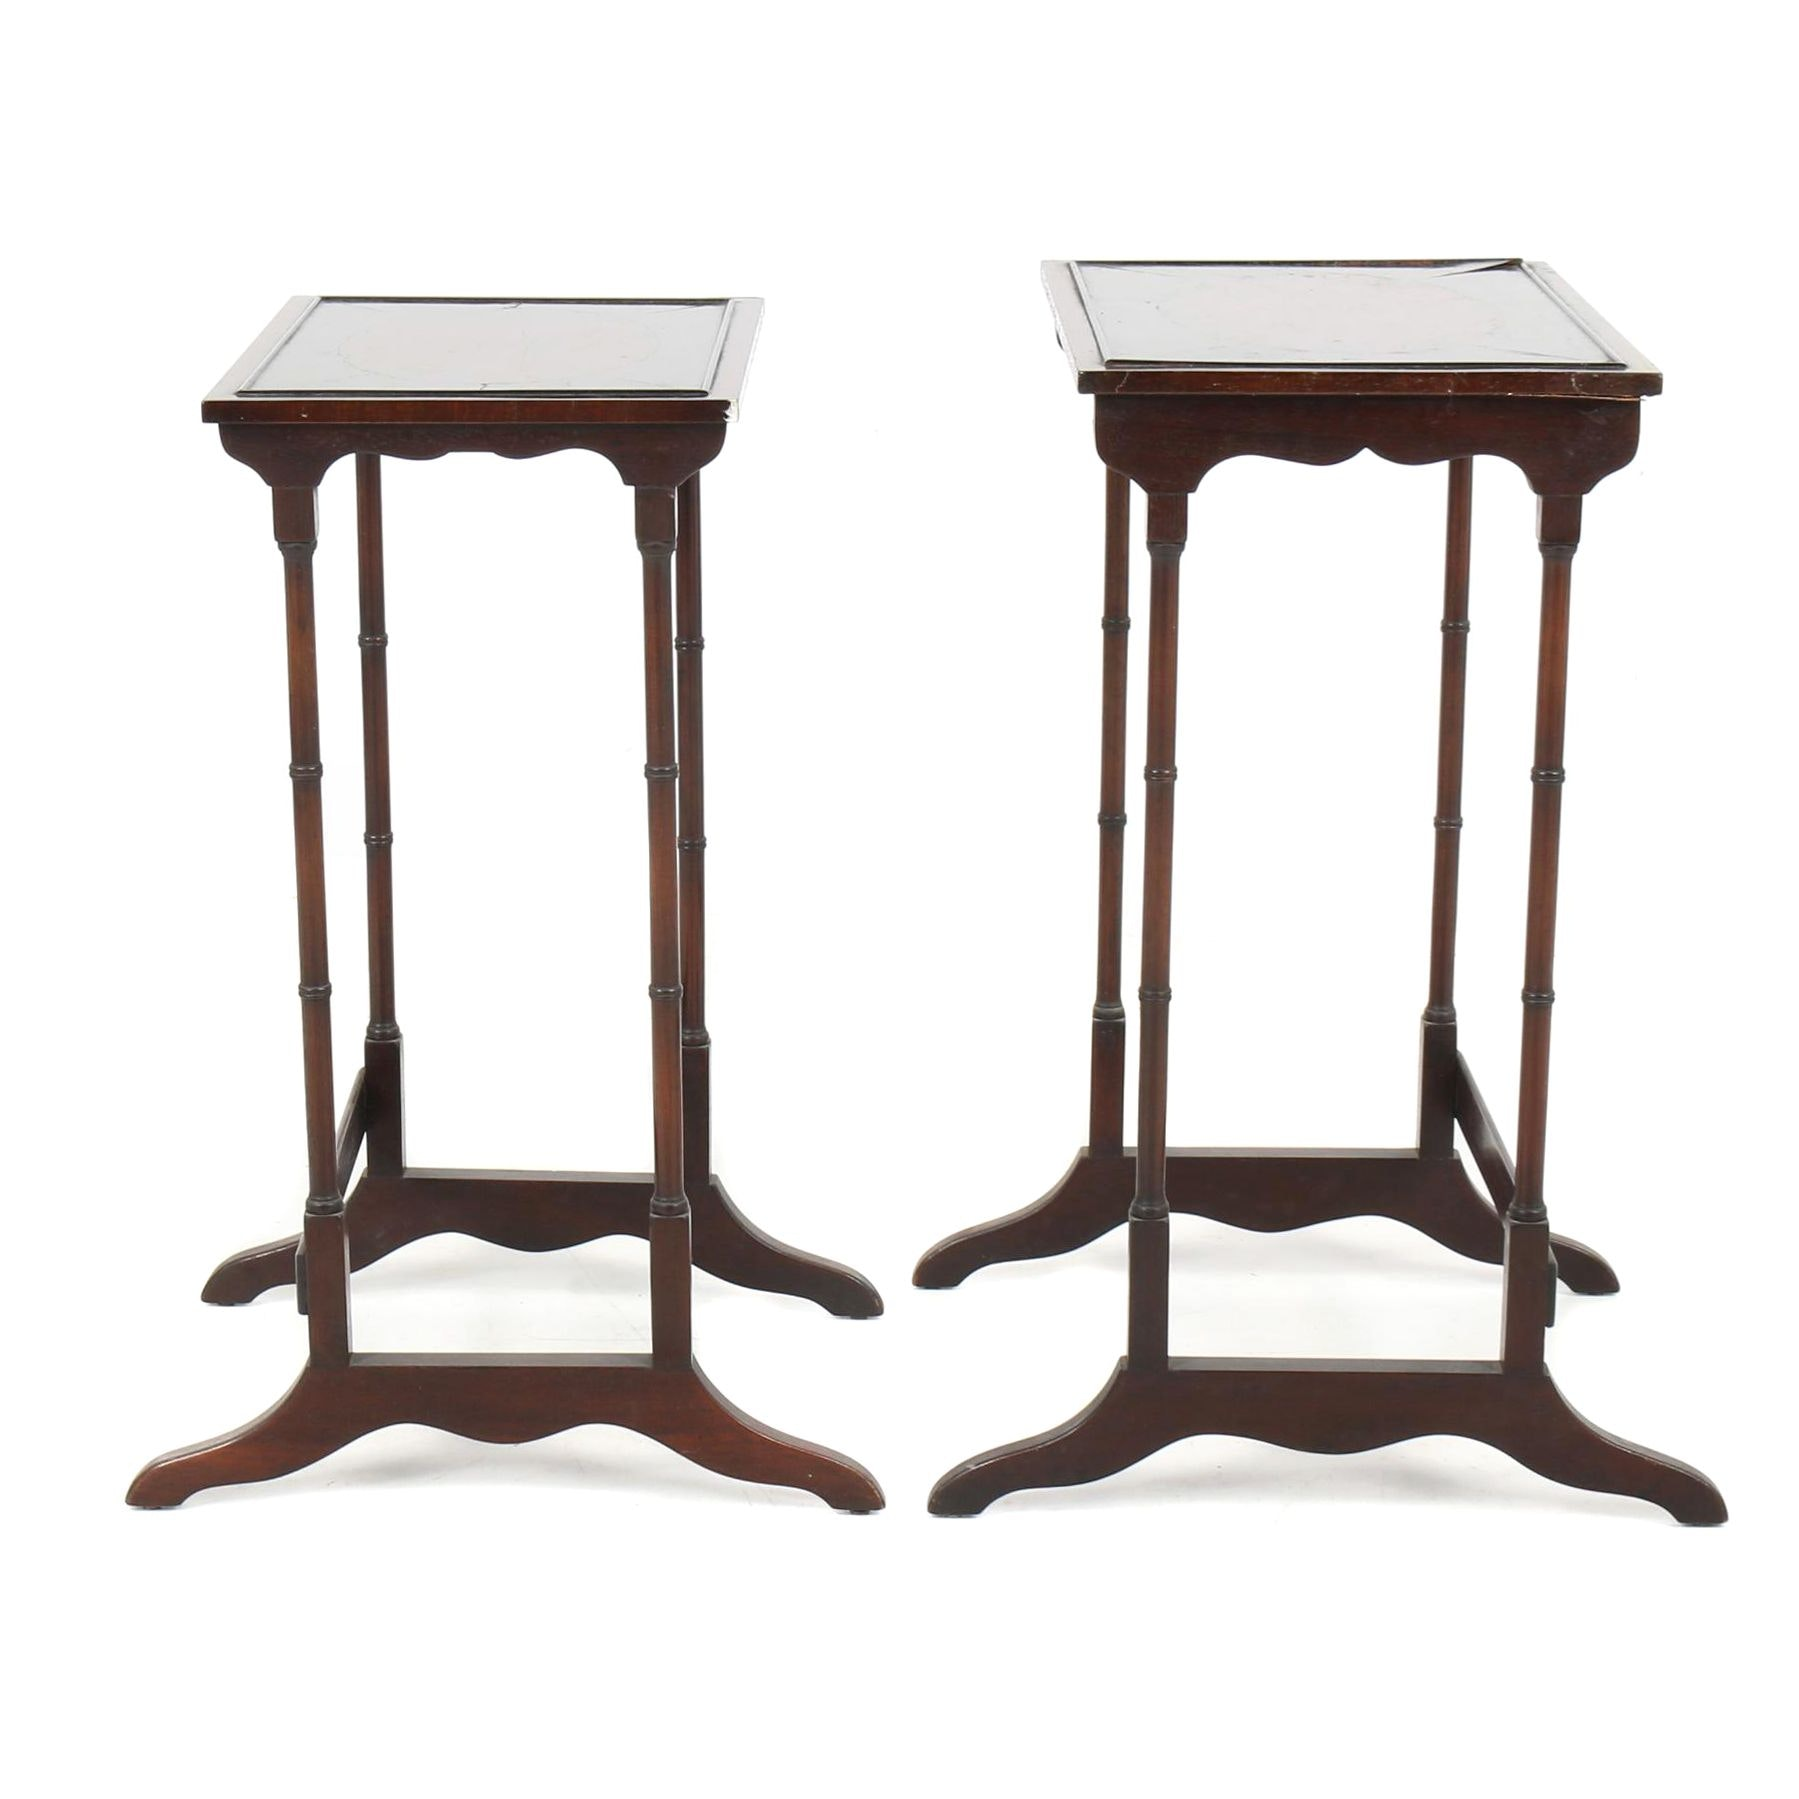 Two Wooden Side Table